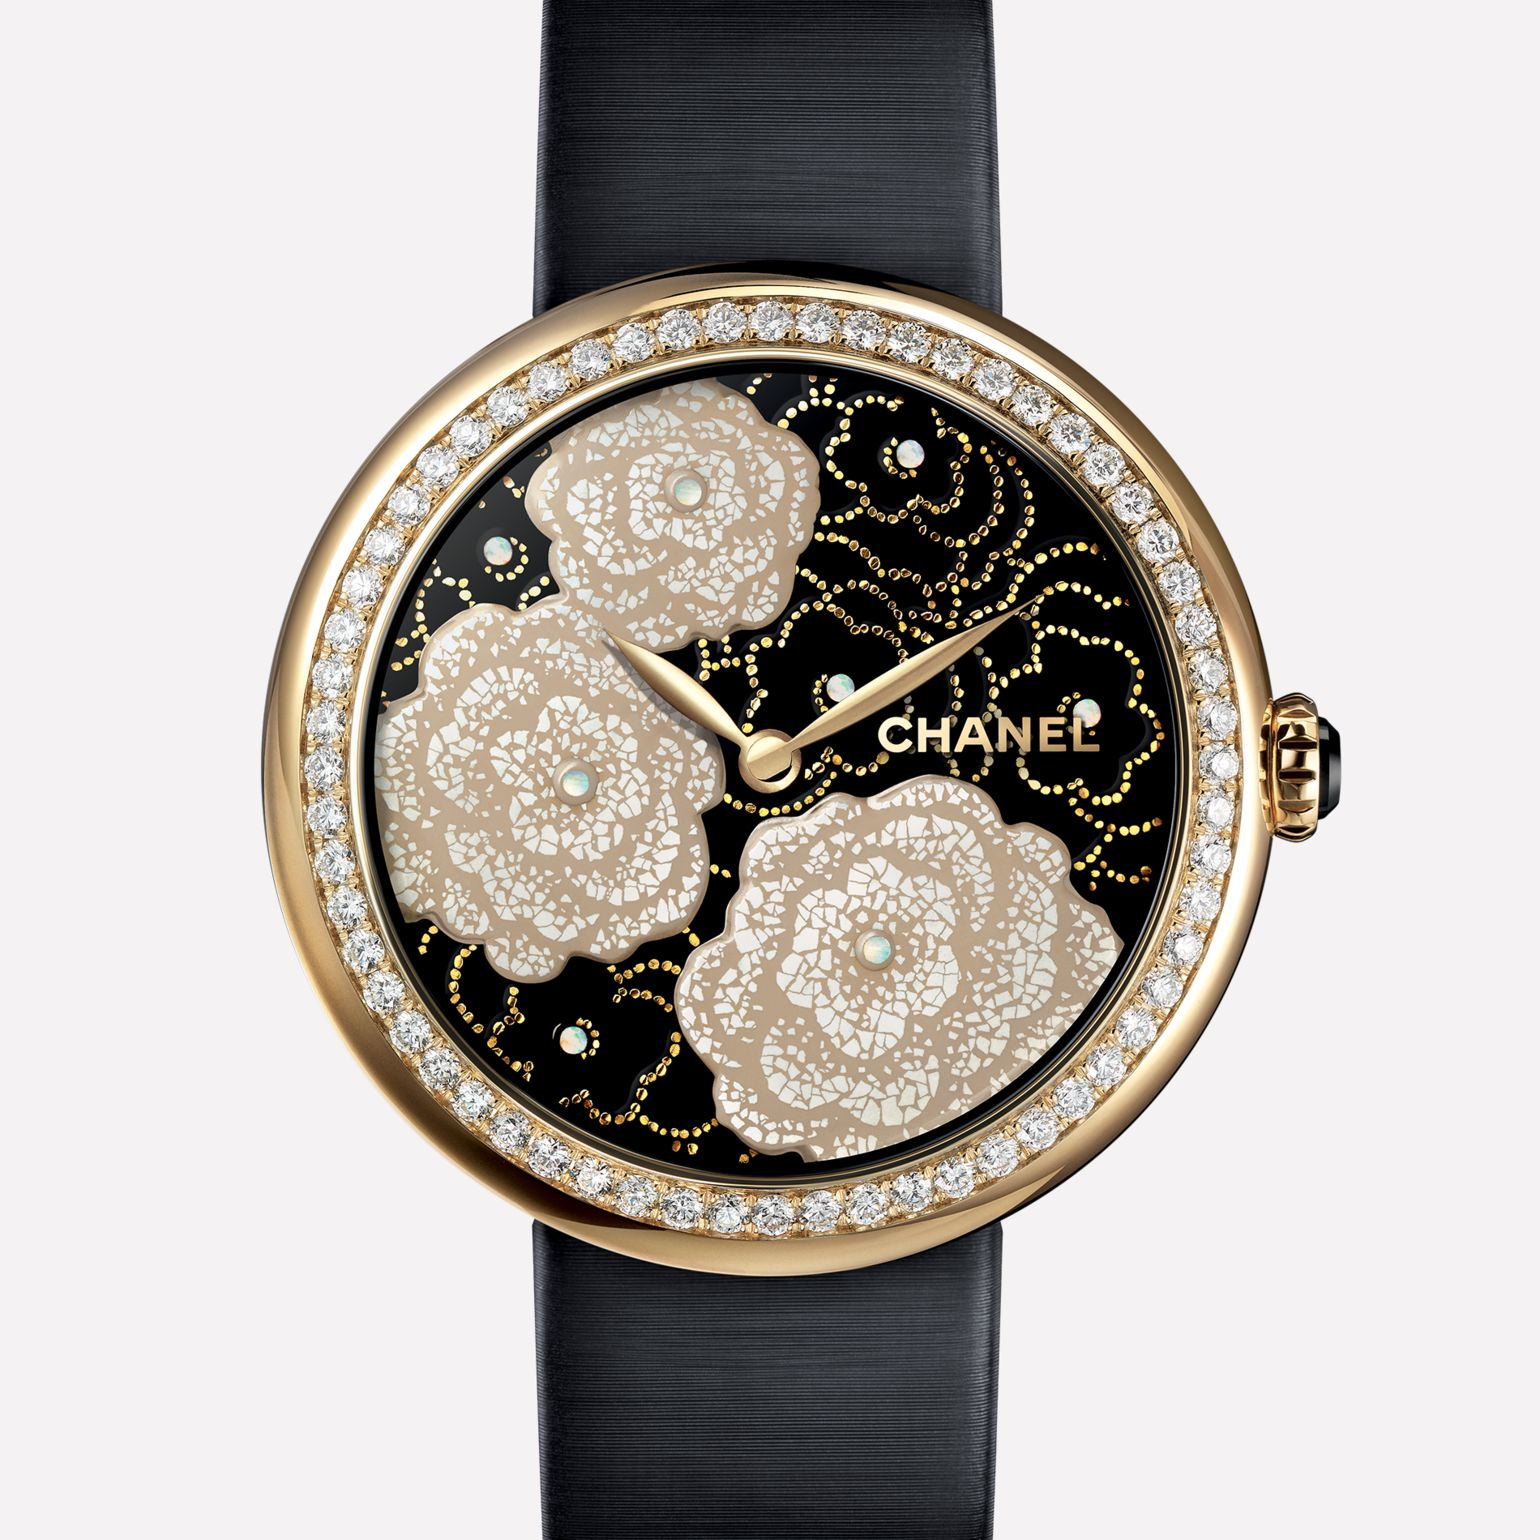 Mademoiselle Privé Watch Camellias in yellow gold and quail eggshells, black lacquer dial - Maki-e technique